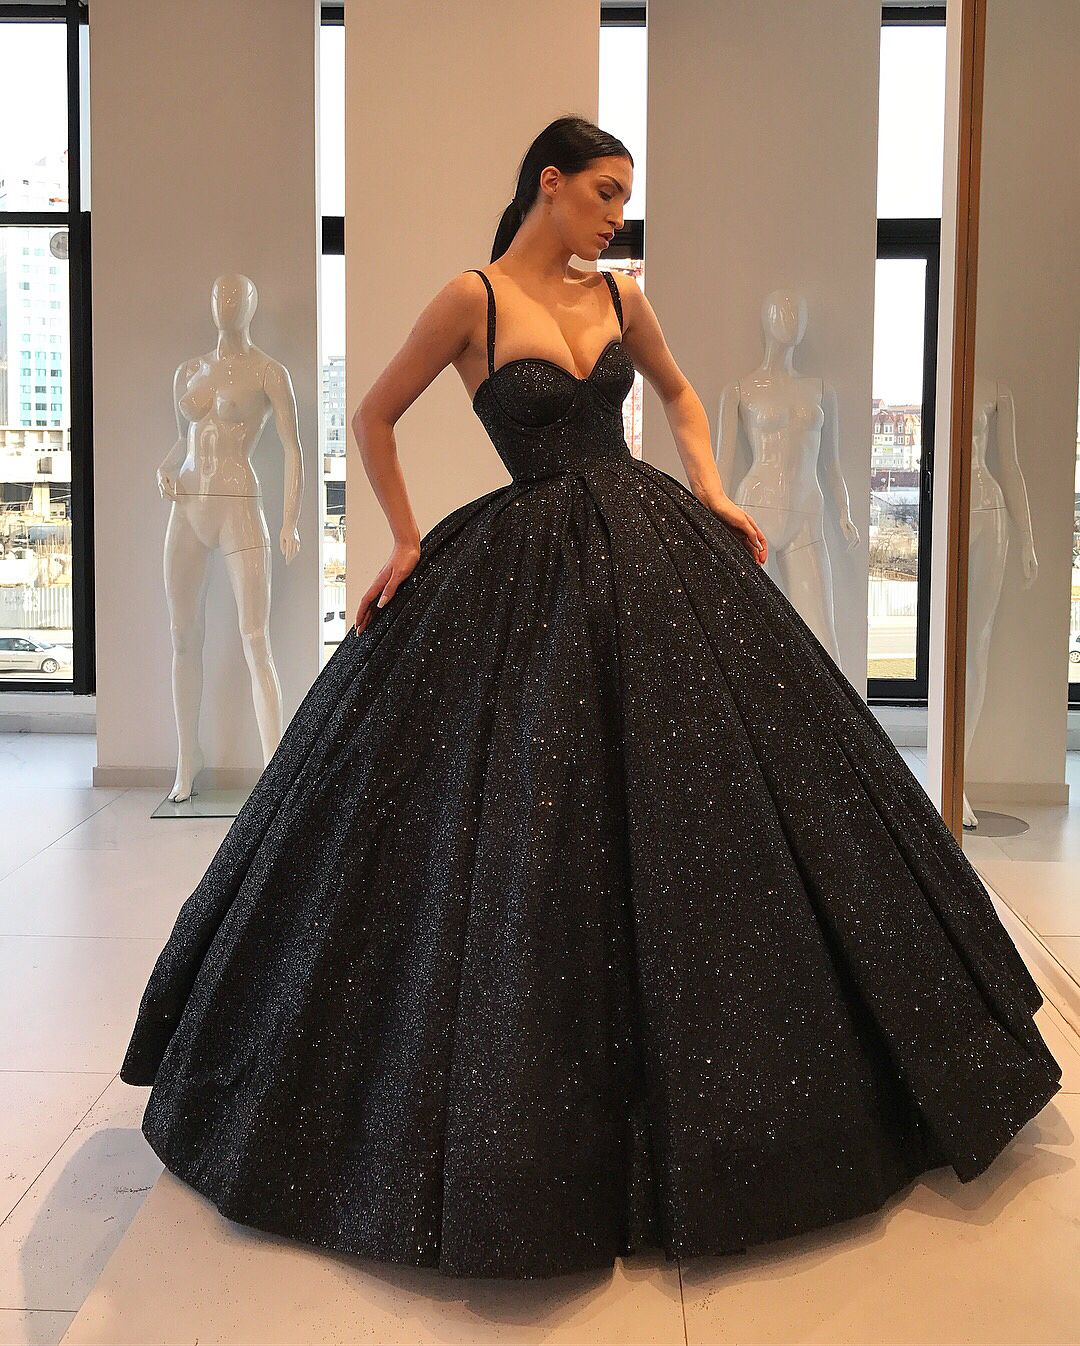 83af2b6cf36 LS Dress by  liastubllaofficial  liastublla. LS Dress by   liastubllaofficial  liastublla Black Ball Gowns ...